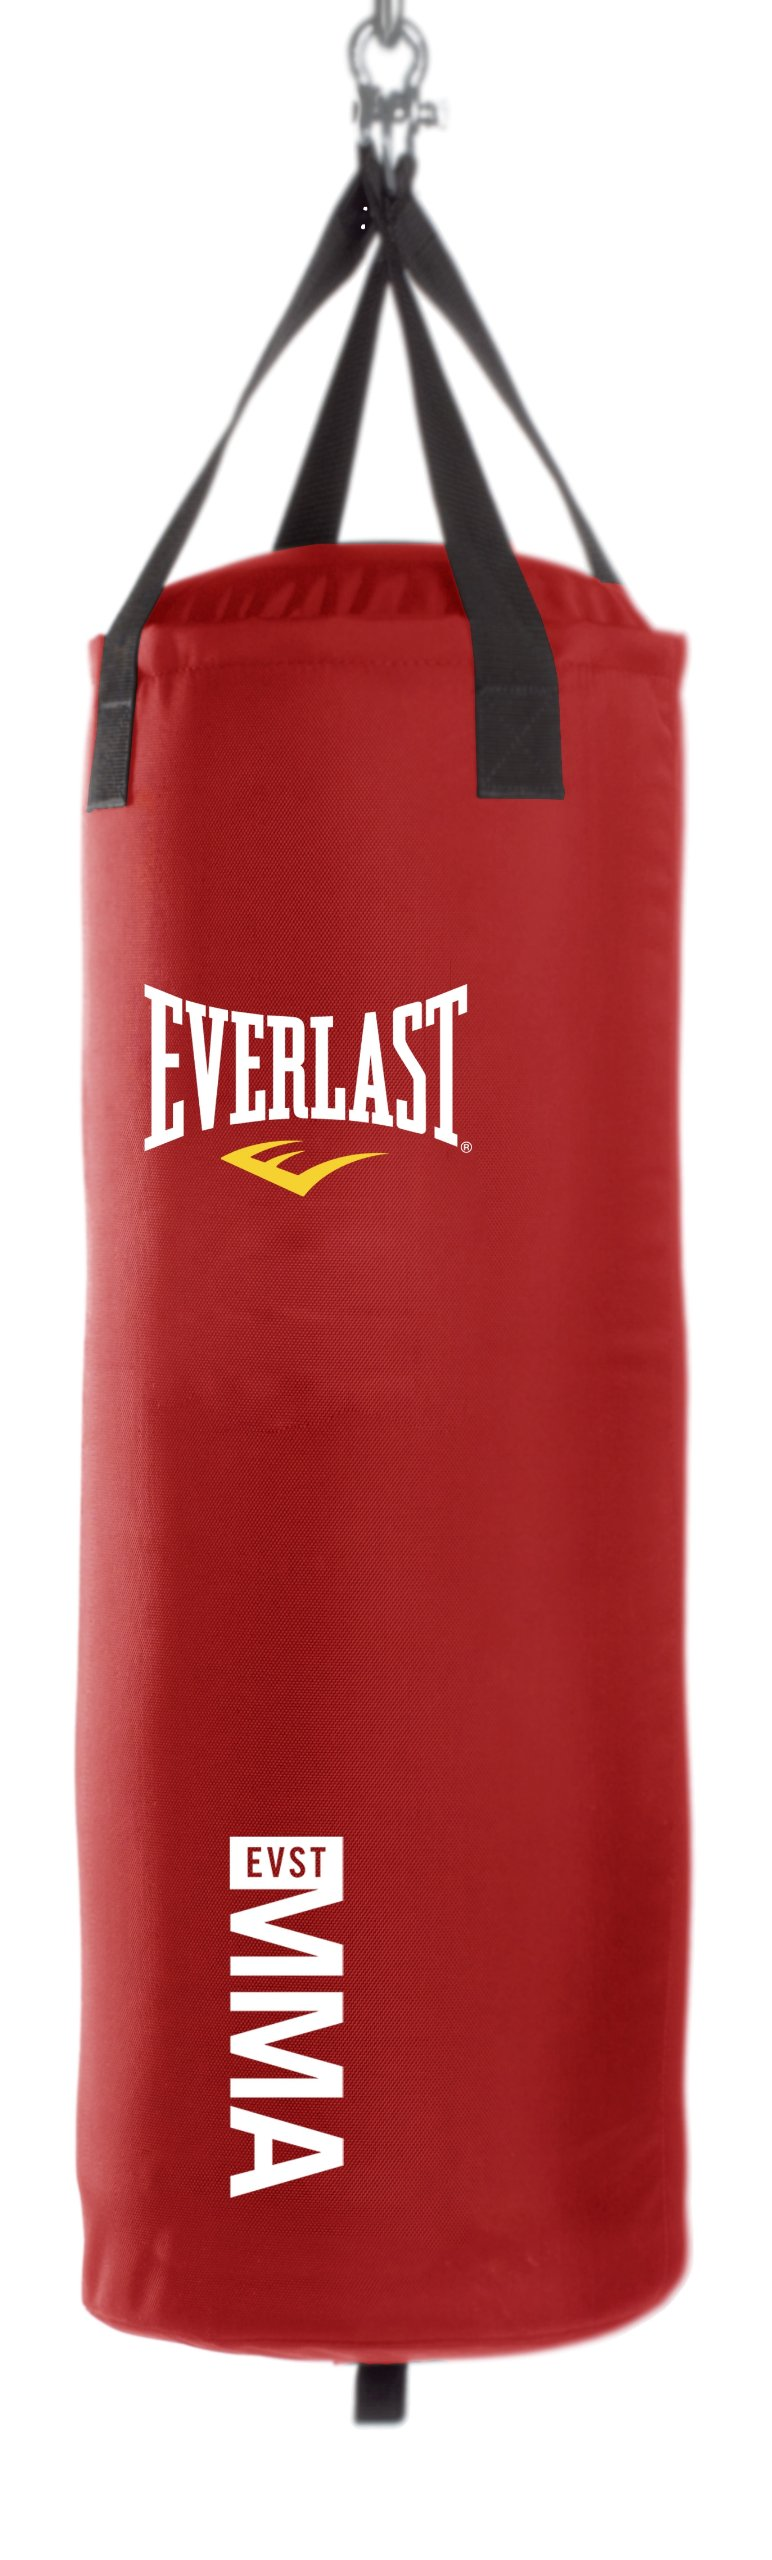 Everlast 70-Pound MMA Poly Canvas Heavy Bag (Red) by Everlast